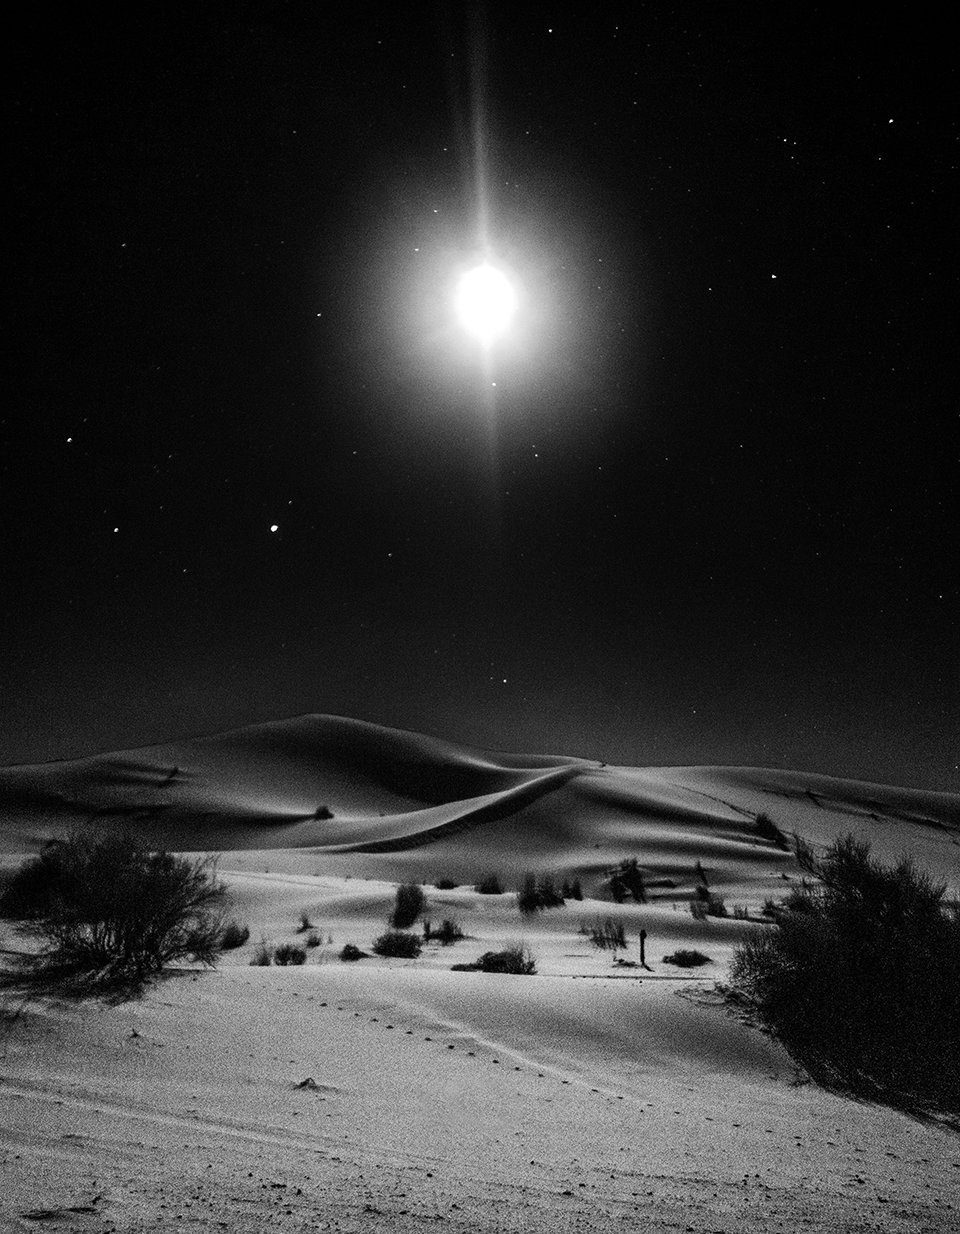 Night - Morocco Desert